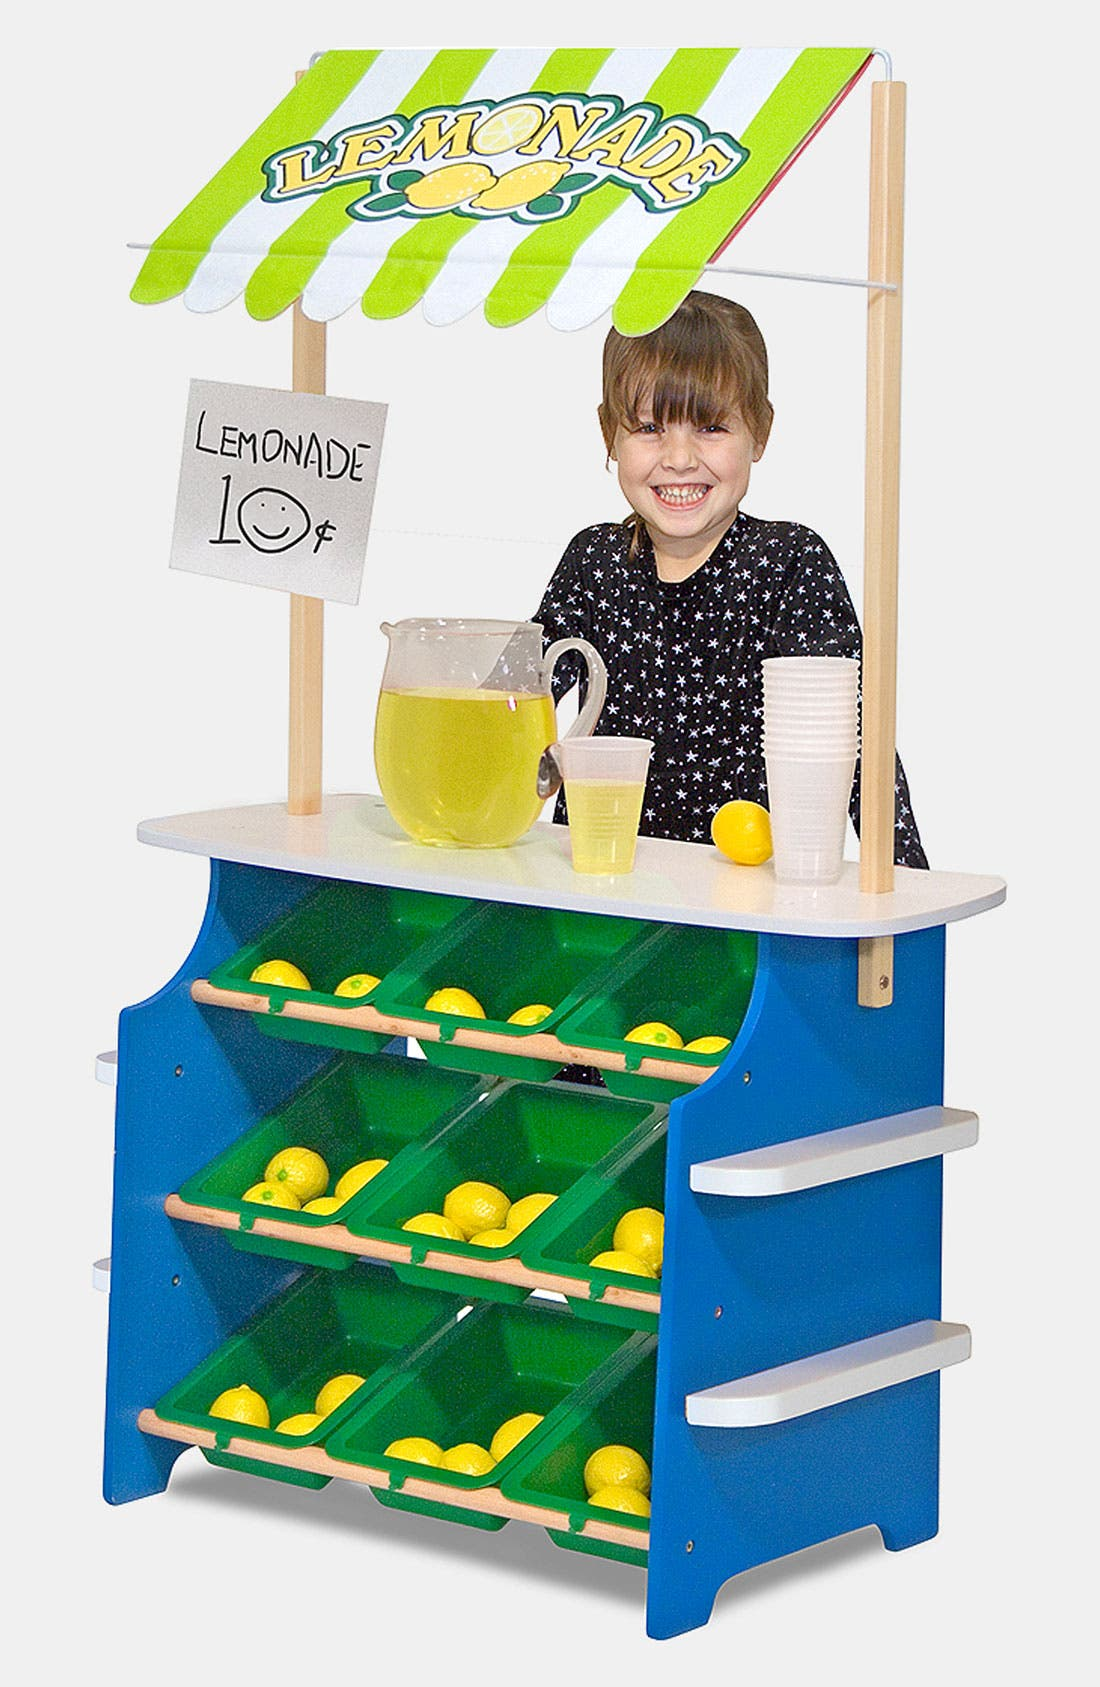 Alternate Image 1 Selected - Melissa & Doug Play Time Convertible Grocery Store & Lemonade Stand (Online Only)